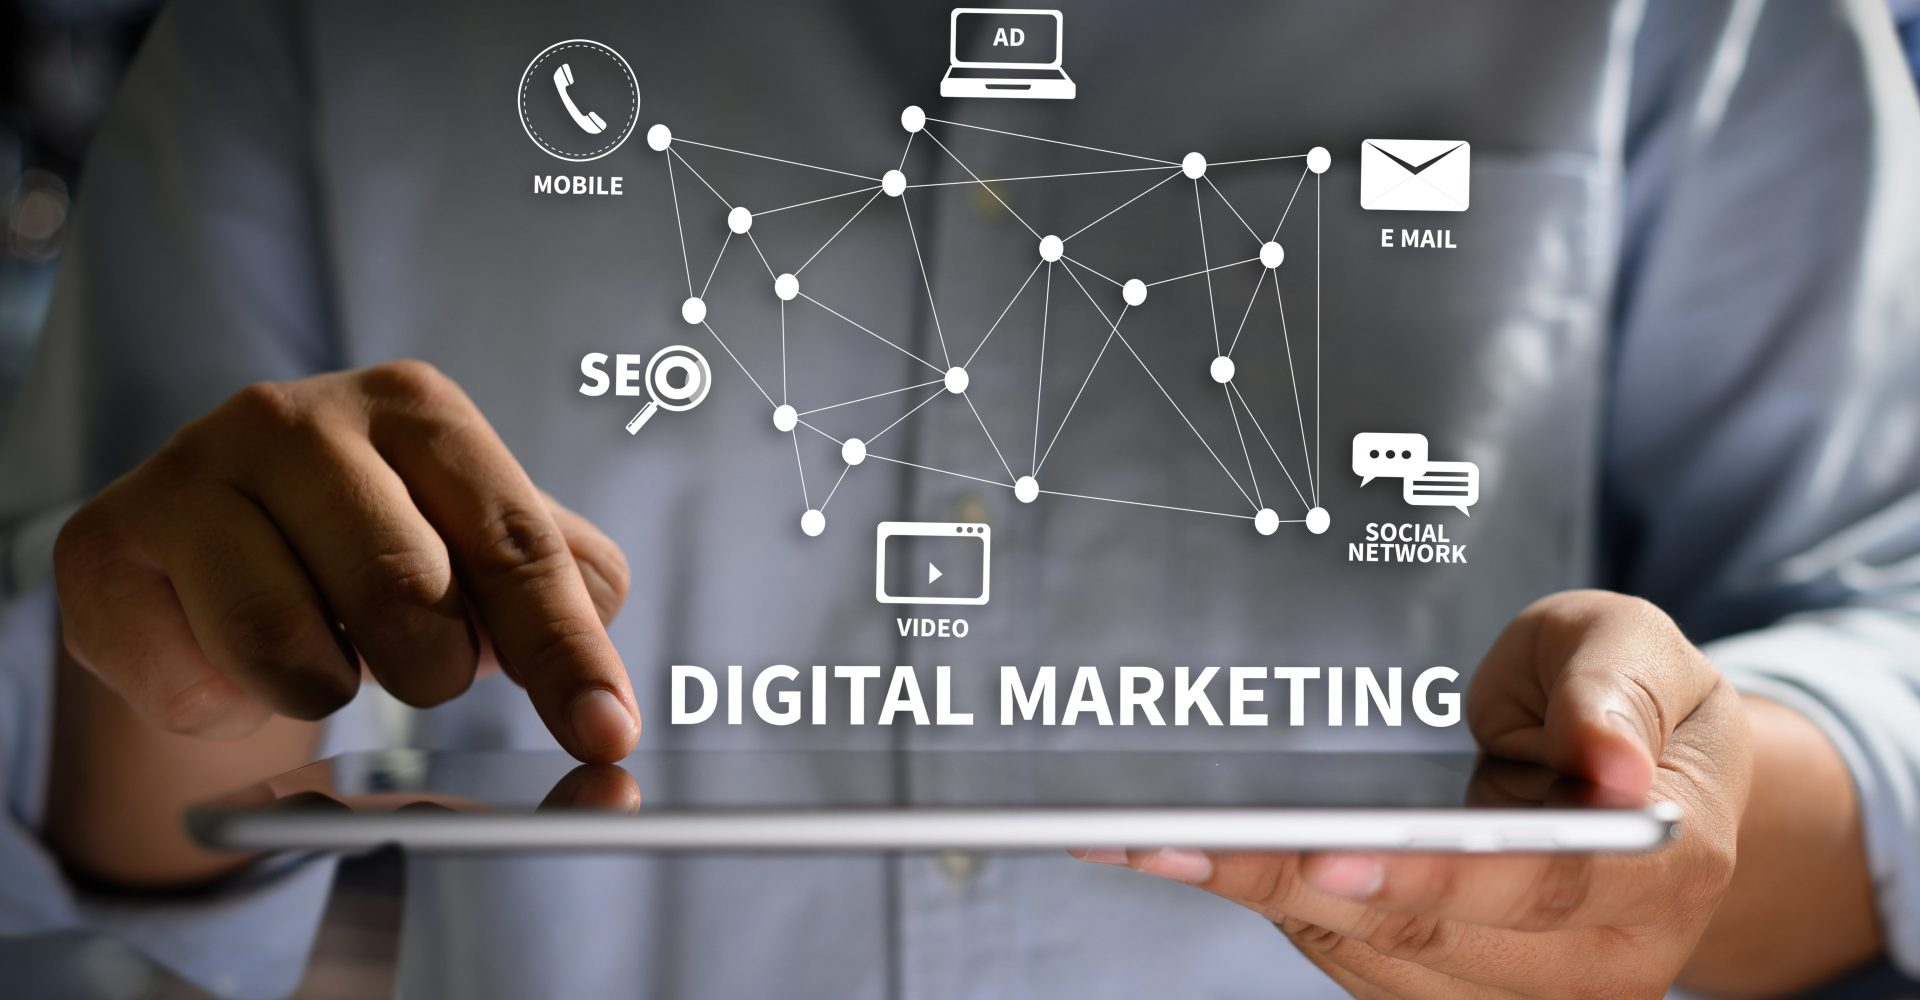 Connecting the dots between Digital Marketing and Sales Culture